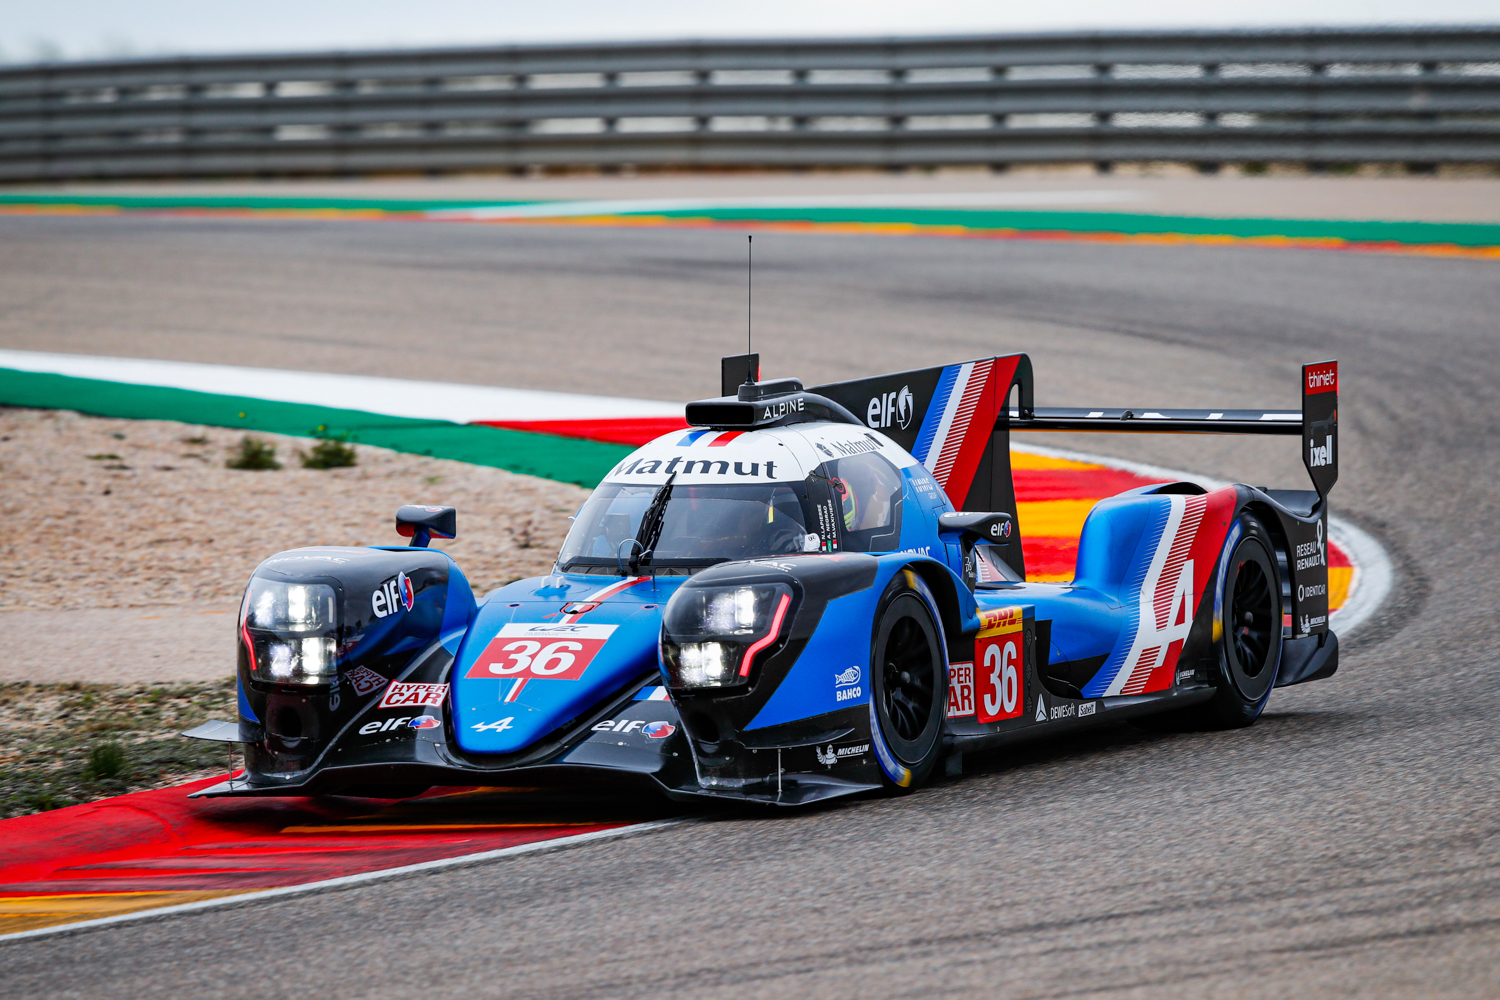 ALPINE A480 - TESTS SESSIONS ON THE MOTORLAND CIRCUIT Florent Gooden